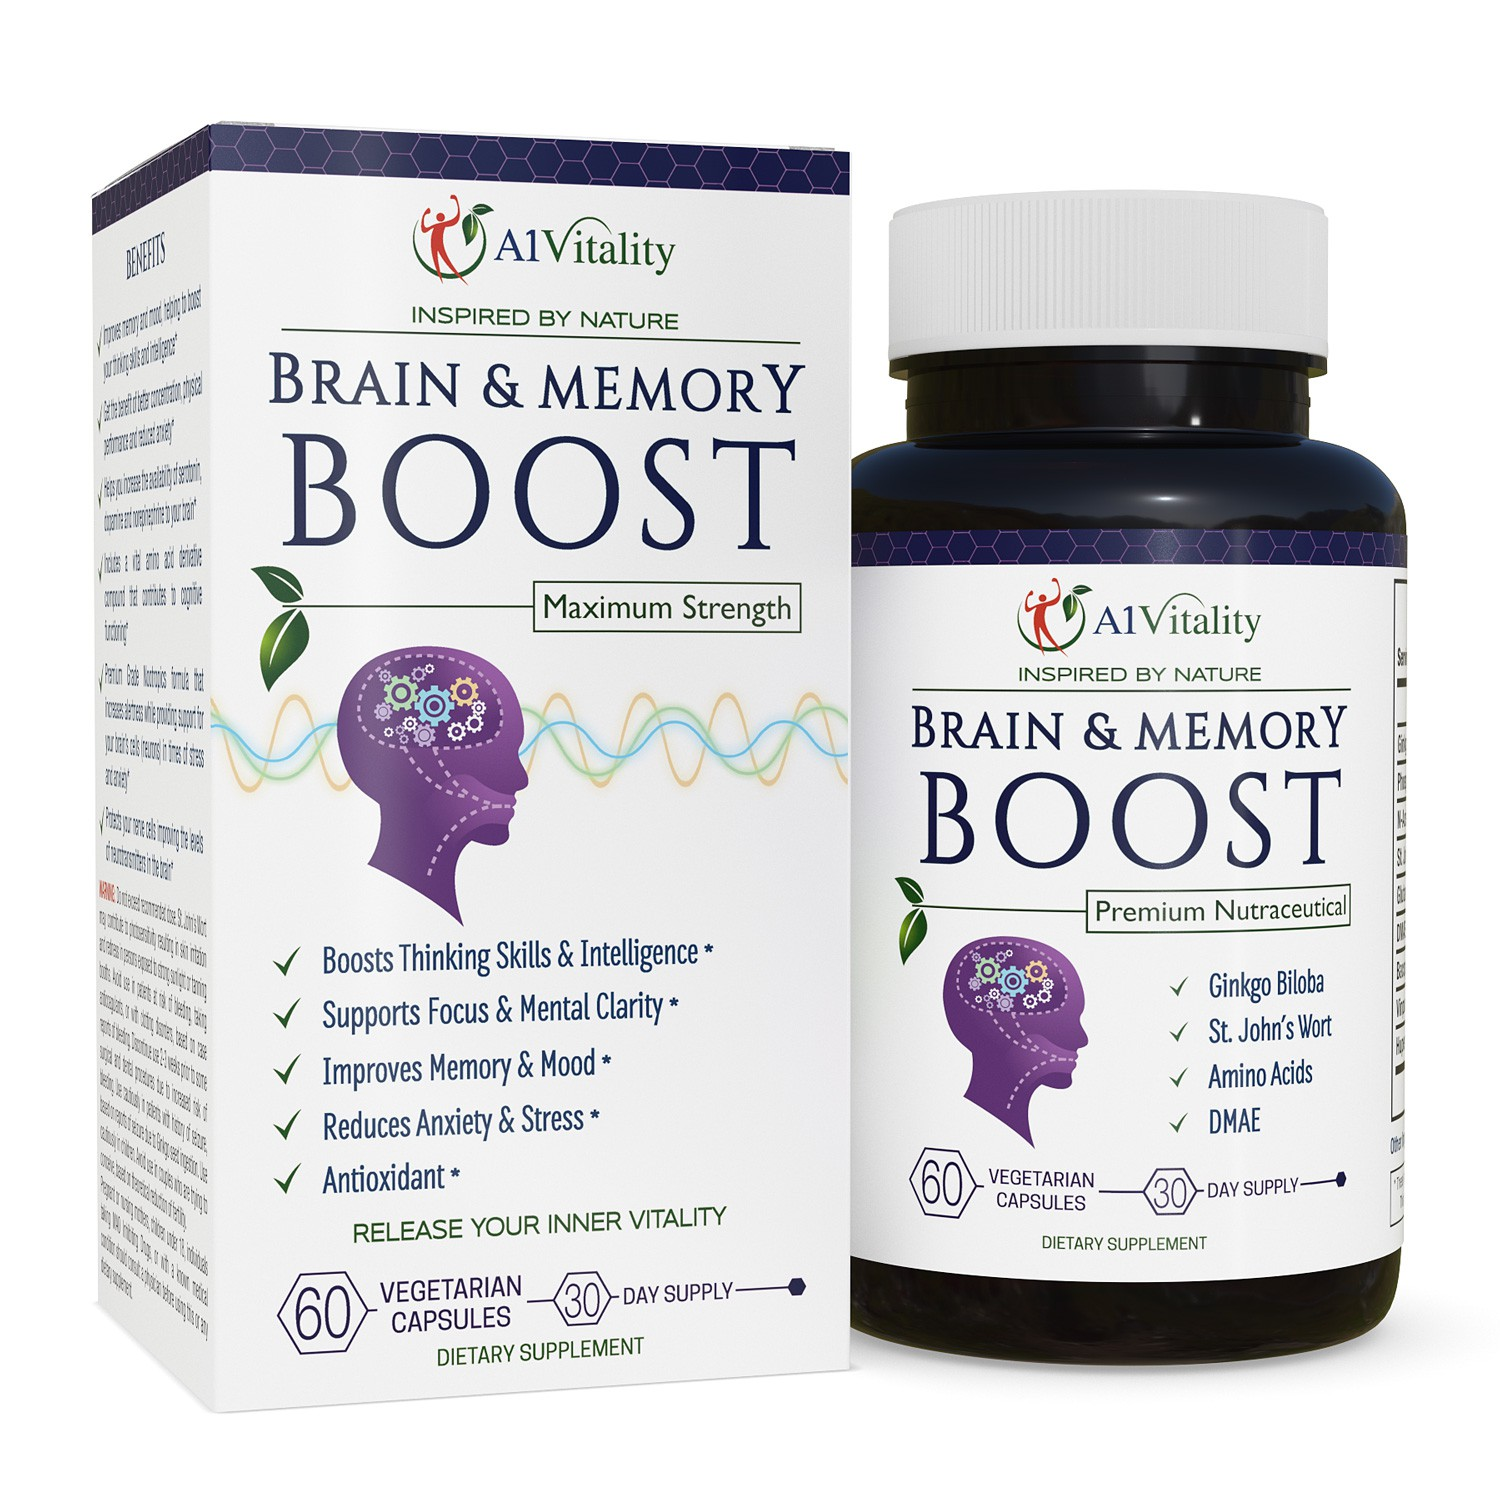 Update to Brain & Memory Boost